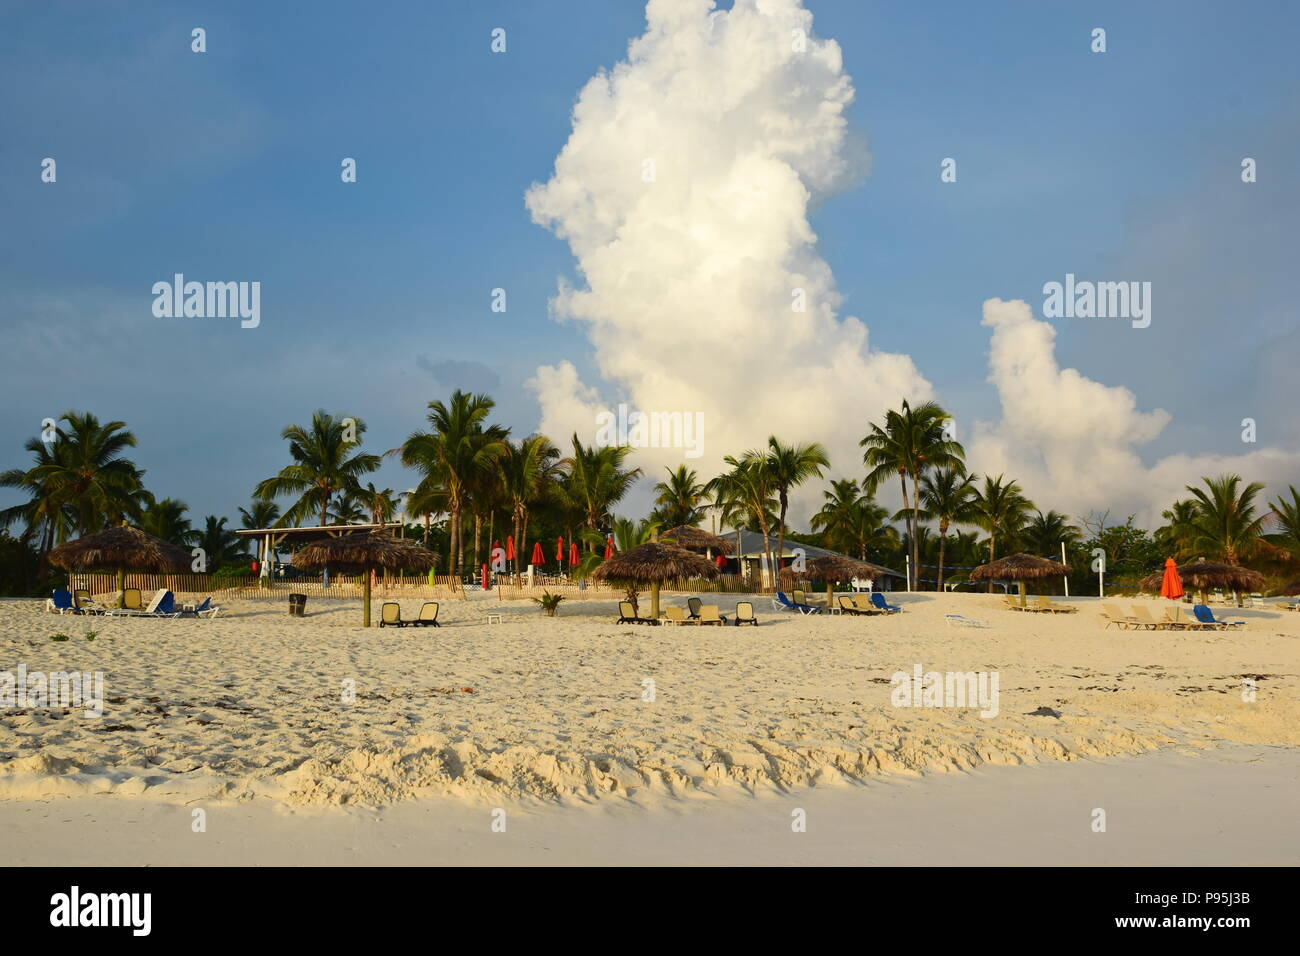 Treasure Cay beach with Coco beach bar and restaurant in backgorund.  Tiki beach umbrellas and chairs, palm trees and cumulonimbus cloud in sky. - Stock Image